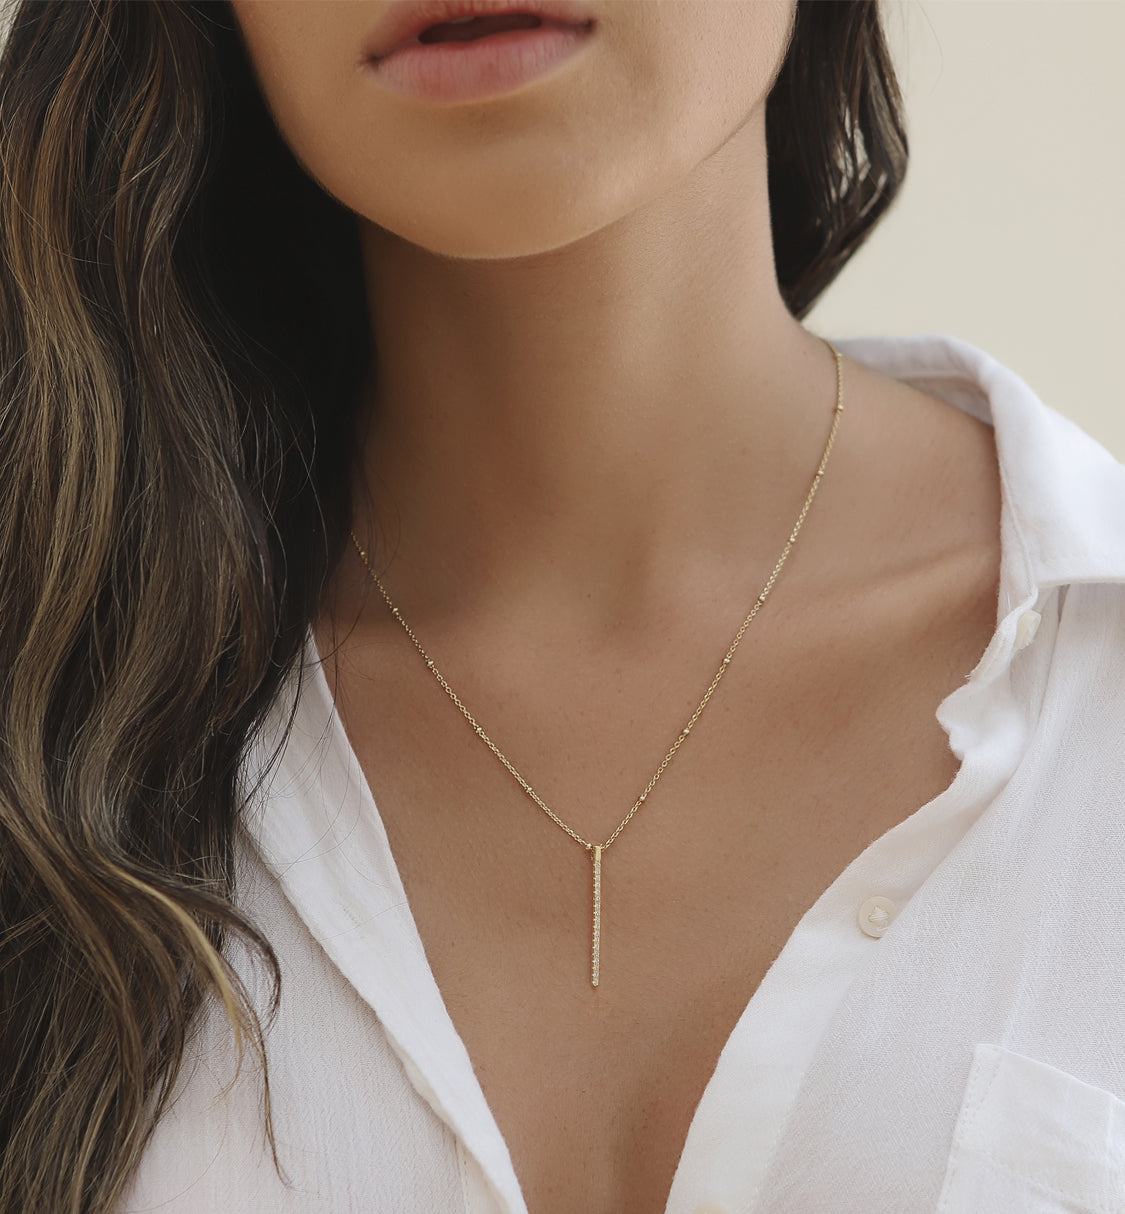 Dainty Pave Bar Necklace, Gold Pendant Necklace